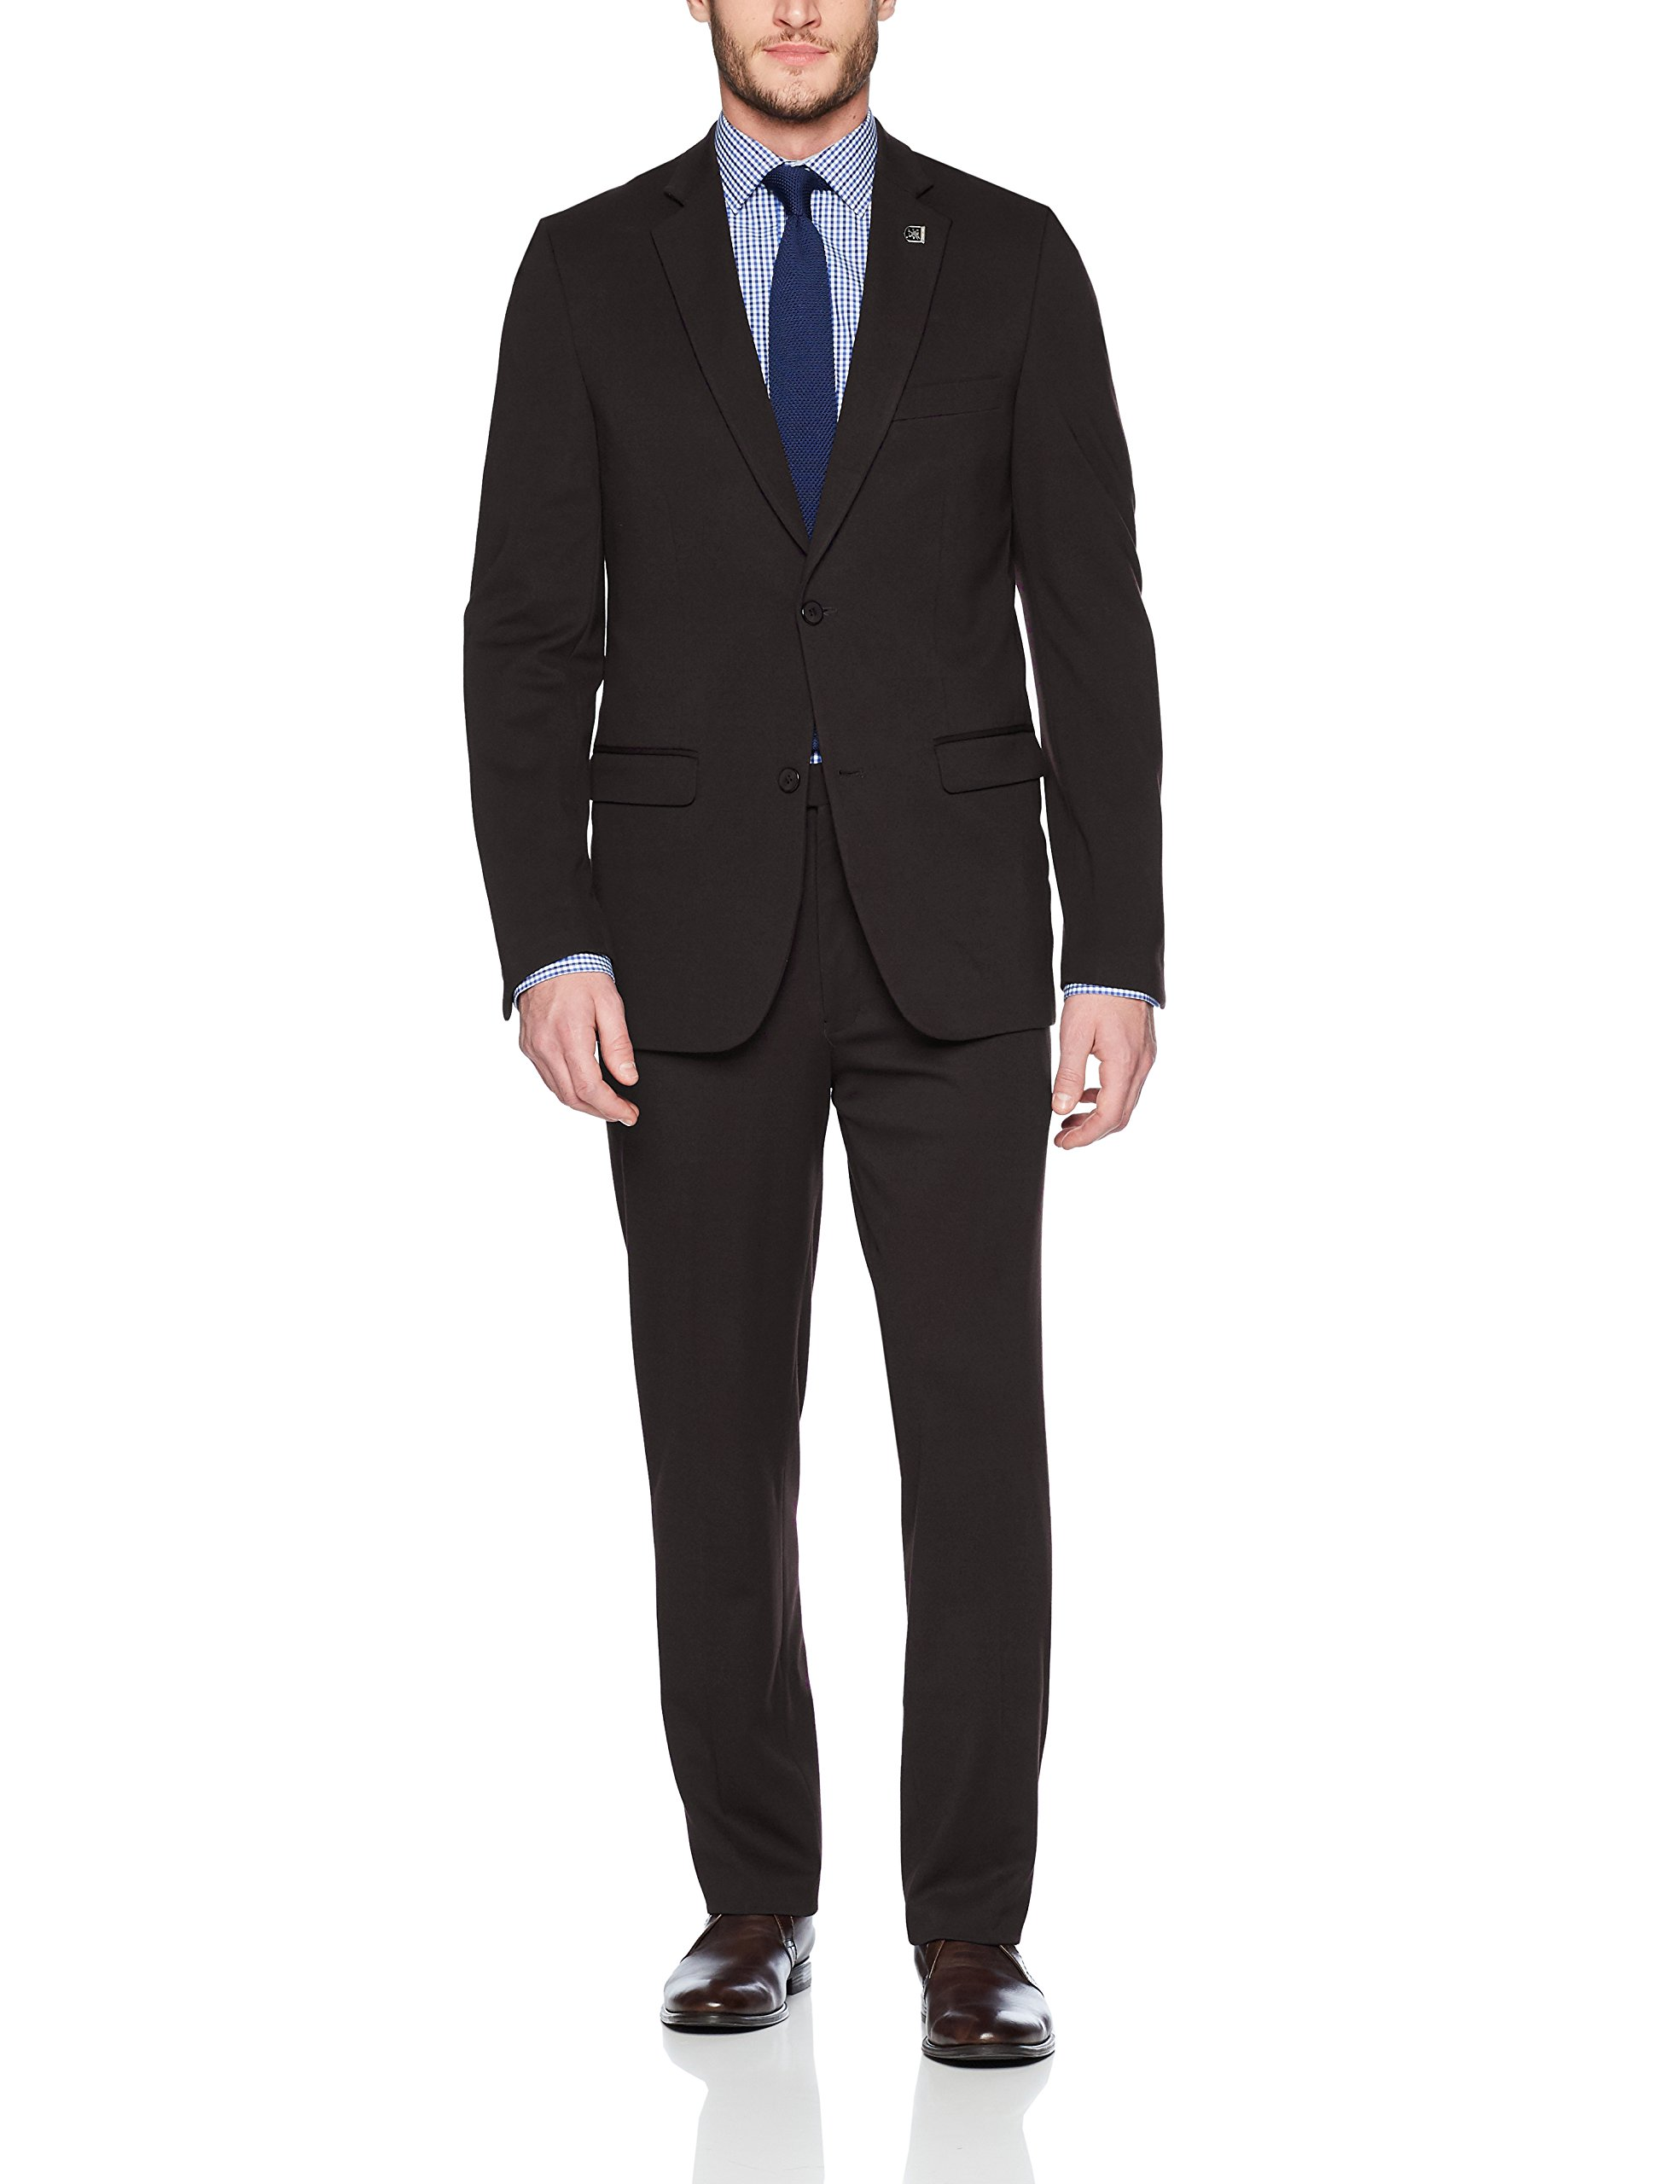 STACY ADAMS Men's Big and Tall Single Breasted Real Flex Stretch Fabric Suit, Black, 50 Regular